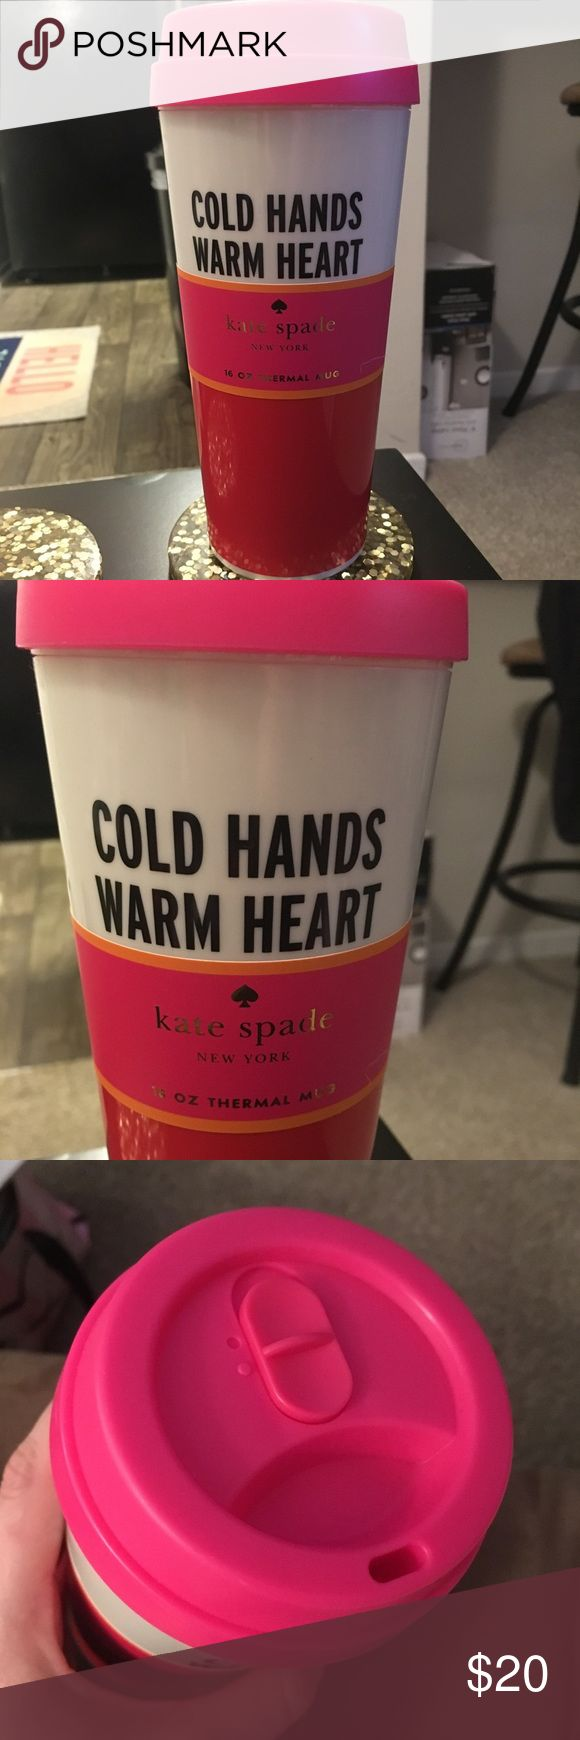 NWT Kate spade cold hands warm heart coffee mug Brand new with tags and comes still in the plastic! 100% authentic coffee mug bought from Kate spade online. It's a 16 oz acrylic thermal mug with a plastic lid. It has a slider open and close insulated lid. kate spade Other